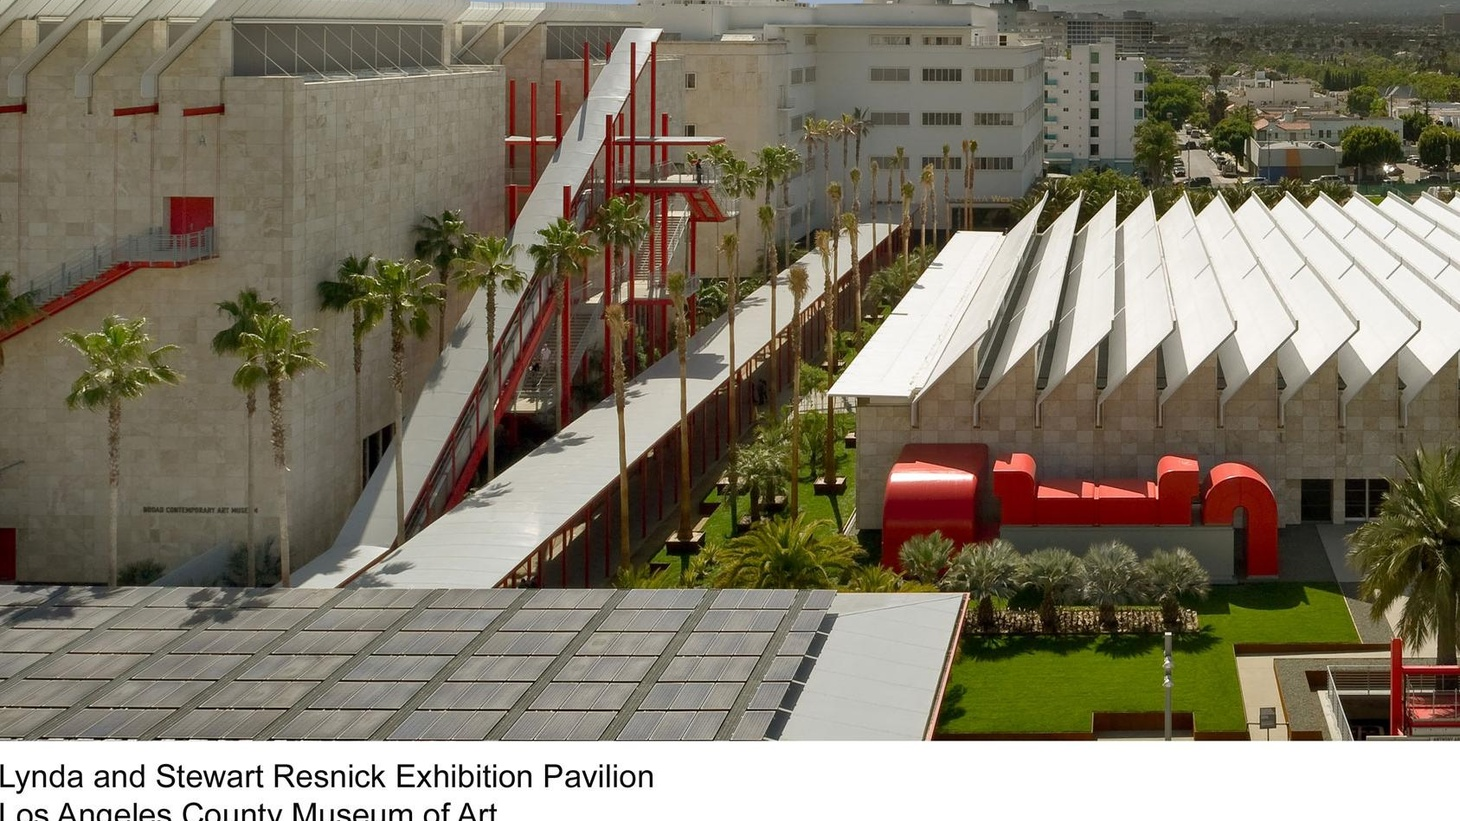 Renzo Piano's new Resnick Pavilion opens soon at the Los Angeles County Museum of Art. LACMA director Michael Govan discusses how it fits into his art and architecture vision for the campus, and architecture writer Sam Lubell explains why Piano is the go-to architect for so many art museums. Plus, Mayor Antonio Villaraigosa, Stewart Reed and Amanda Bromberg discuss CicLAvia, biomorphic bikes and the joys and challenges of urban cycling in LA.